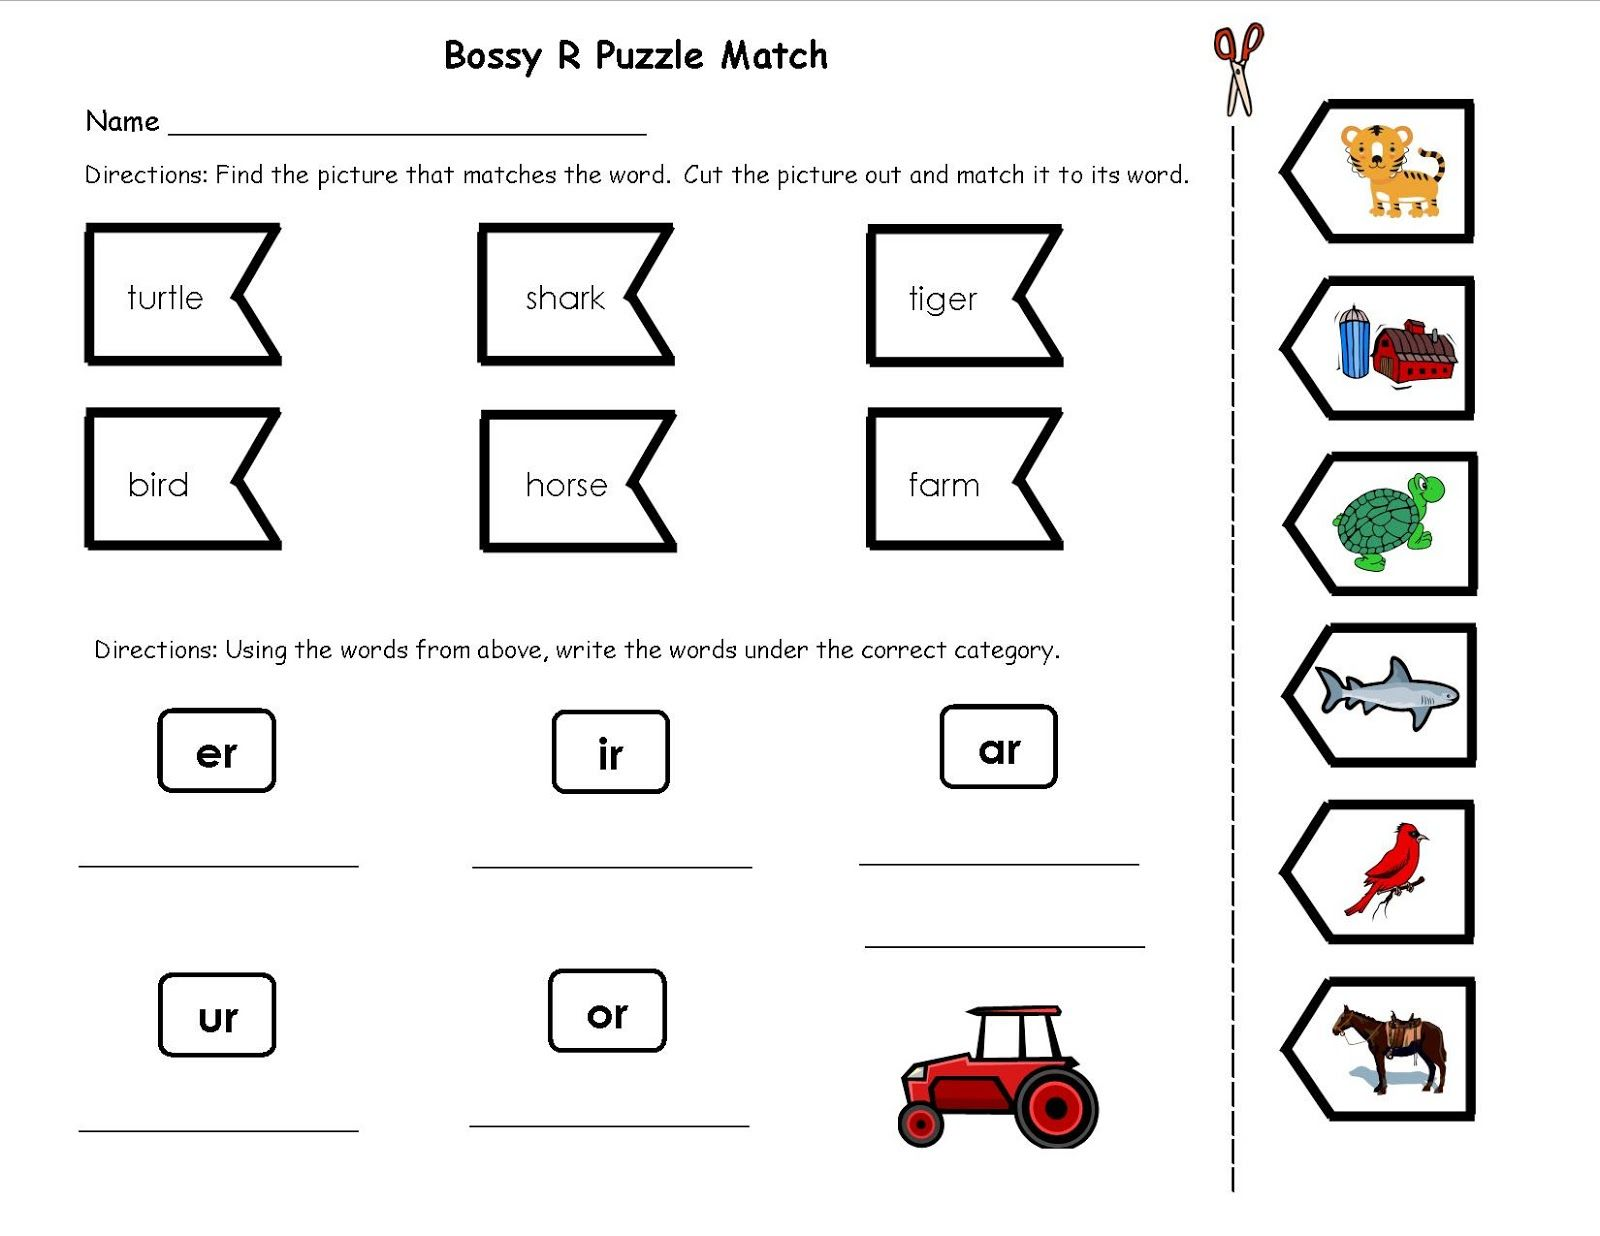 worksheet Bossy R Worksheets bossy r worksheets for 1st grade did these activities with my students and they loved